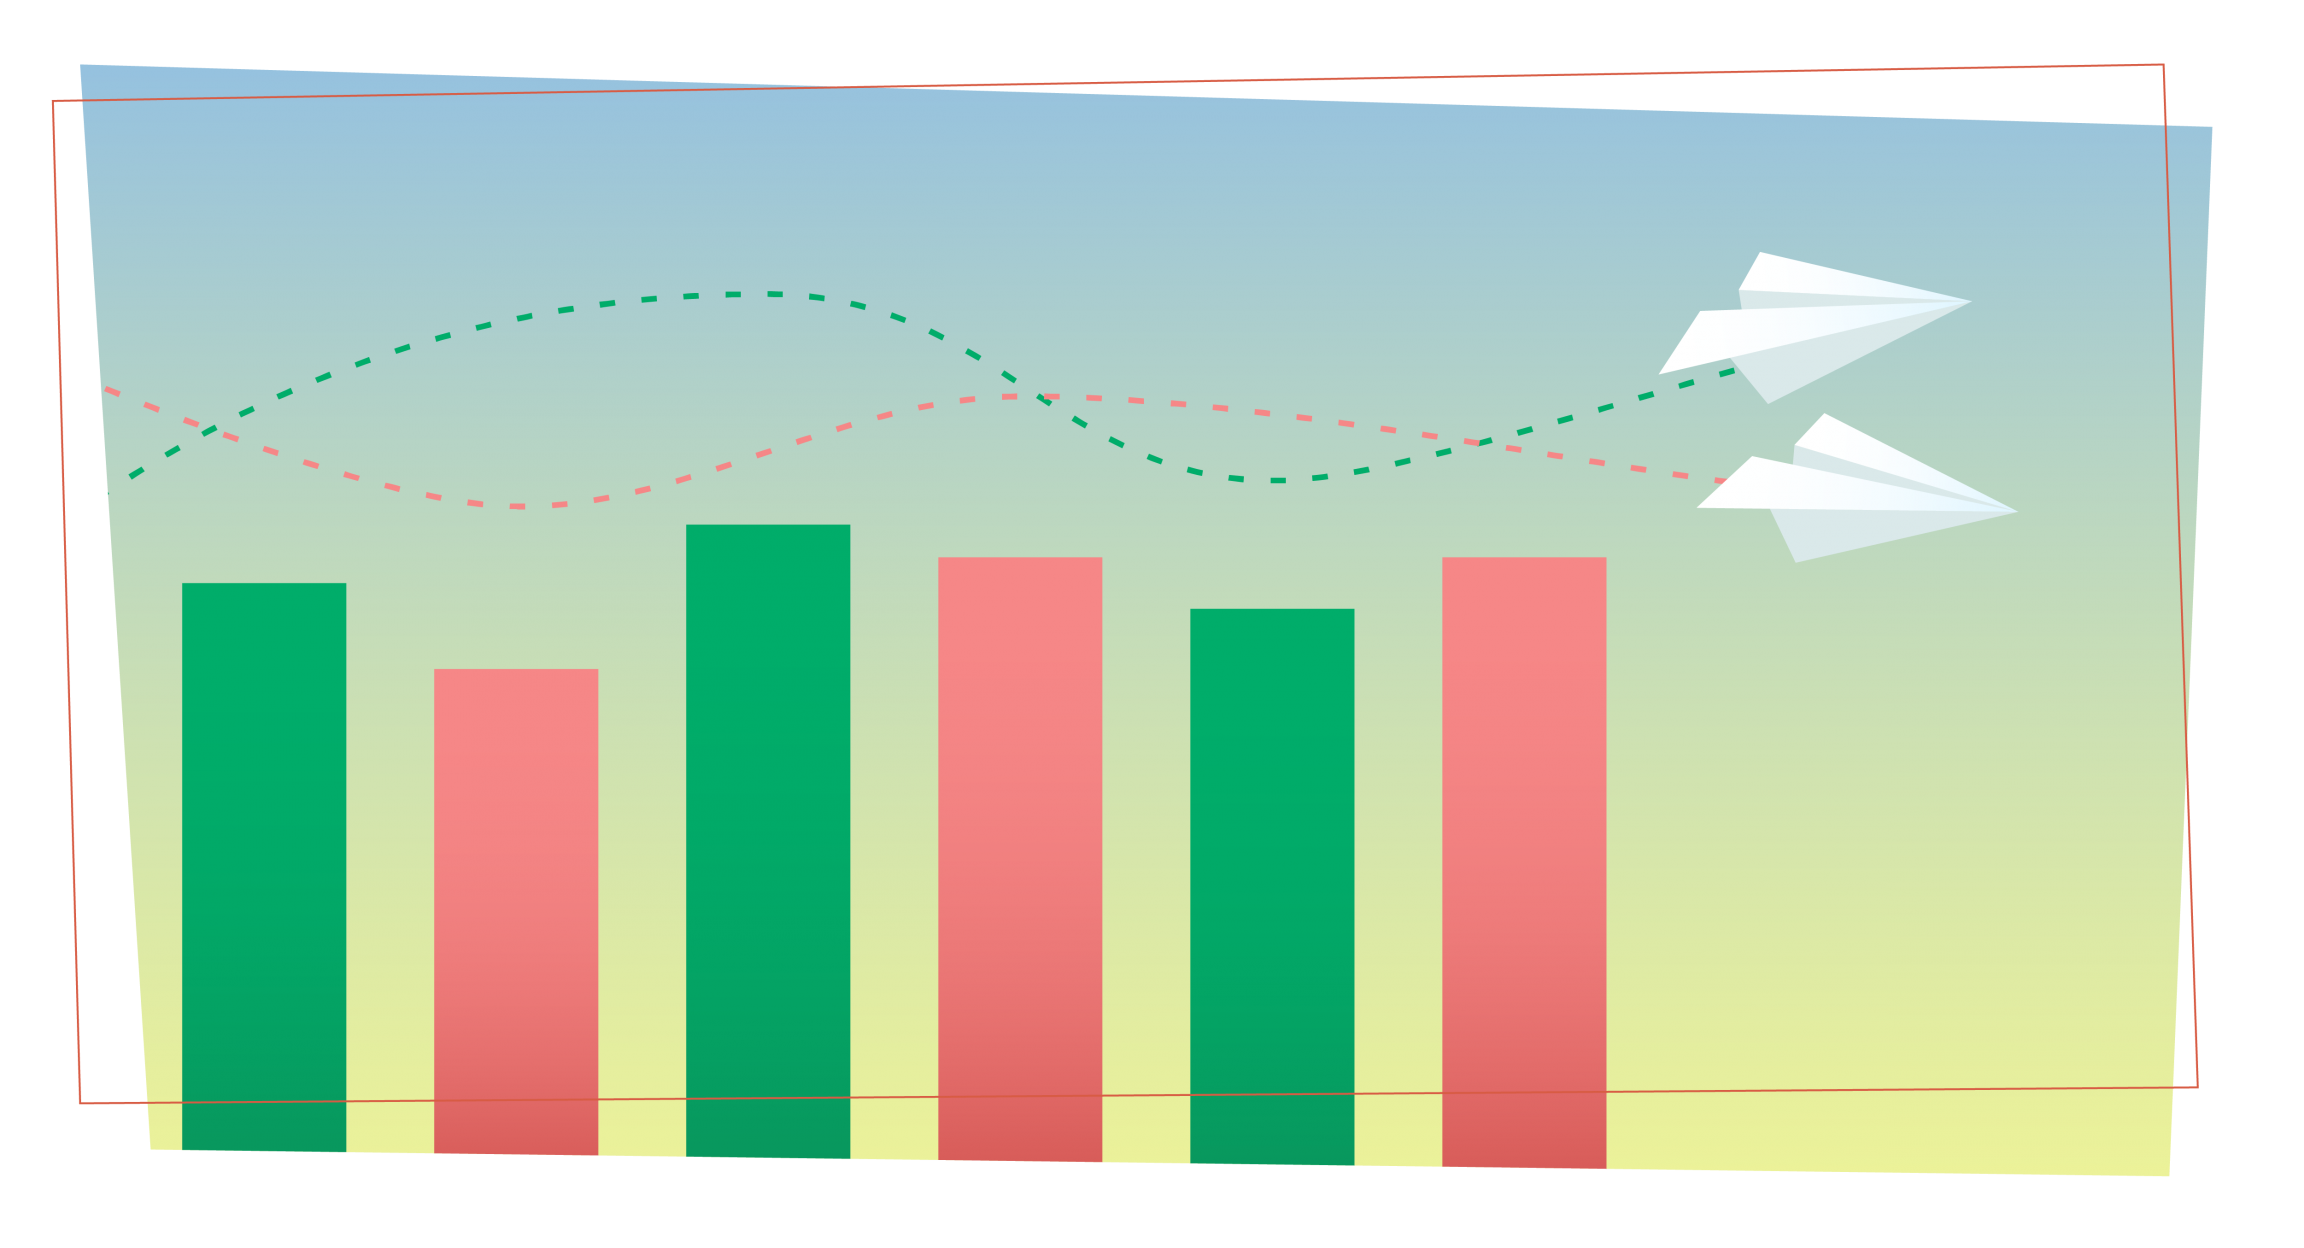 two paper planes have intersecting paths as they fly over a bar chart with red and green bars